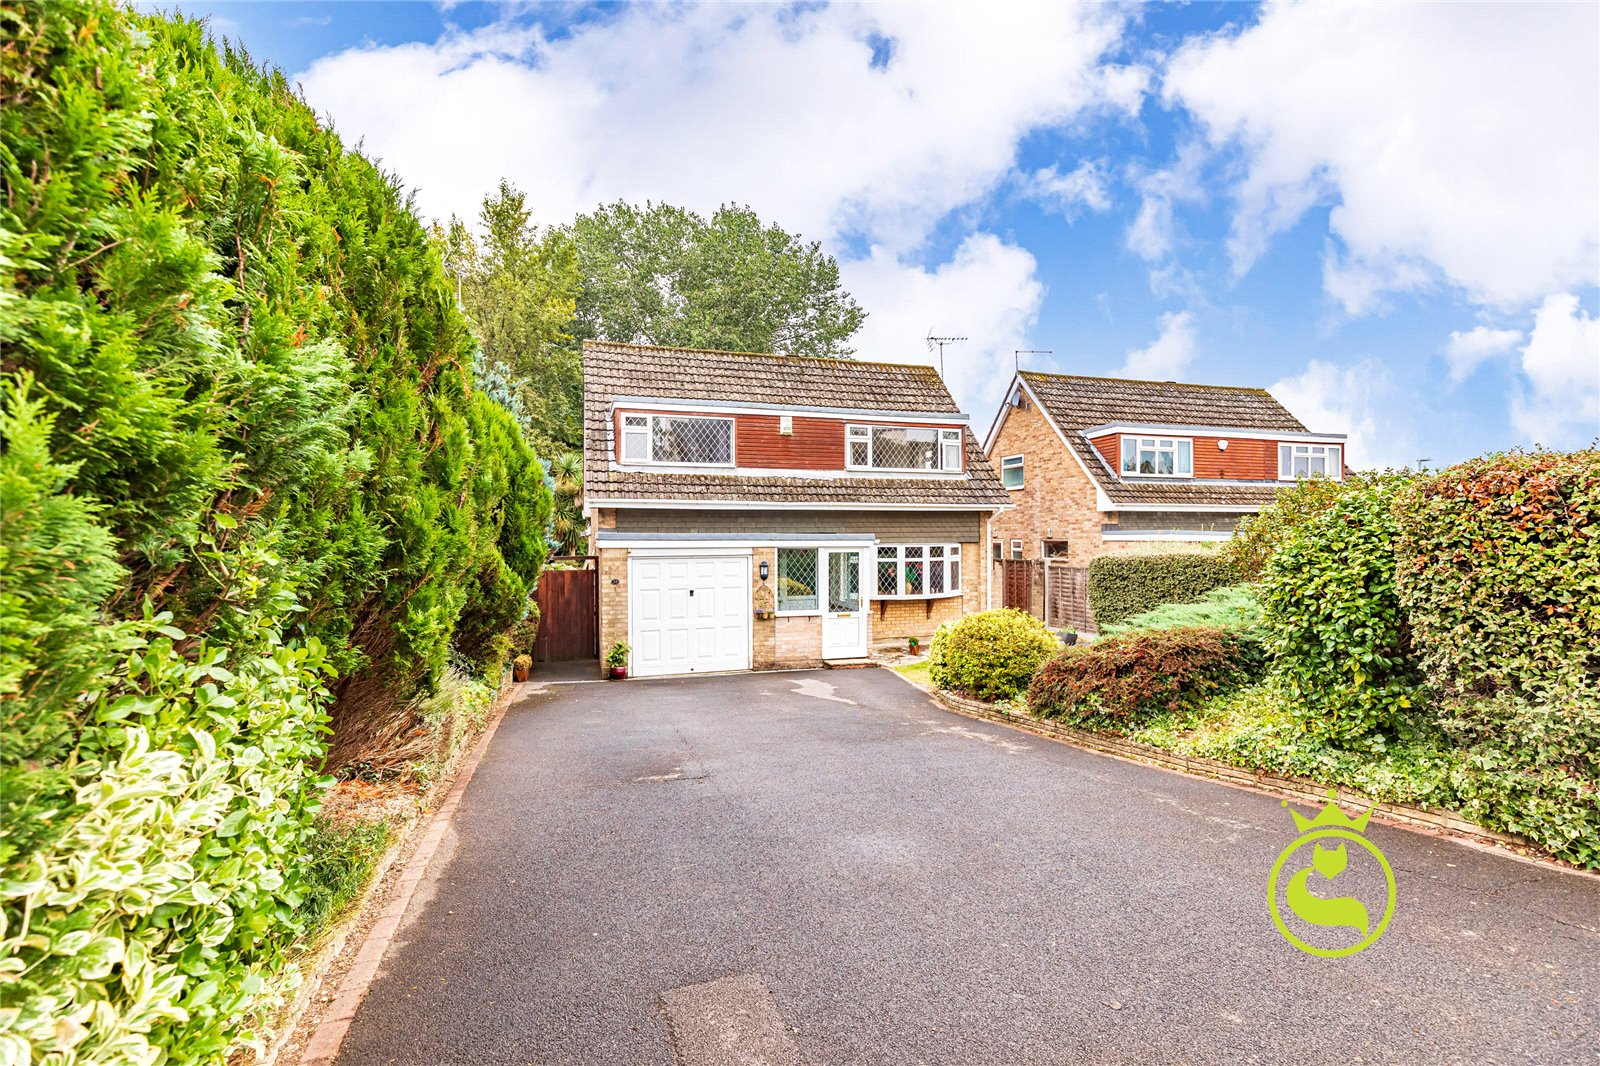 4 bed house for sale in Scarf Road, Canford Heath, BH17